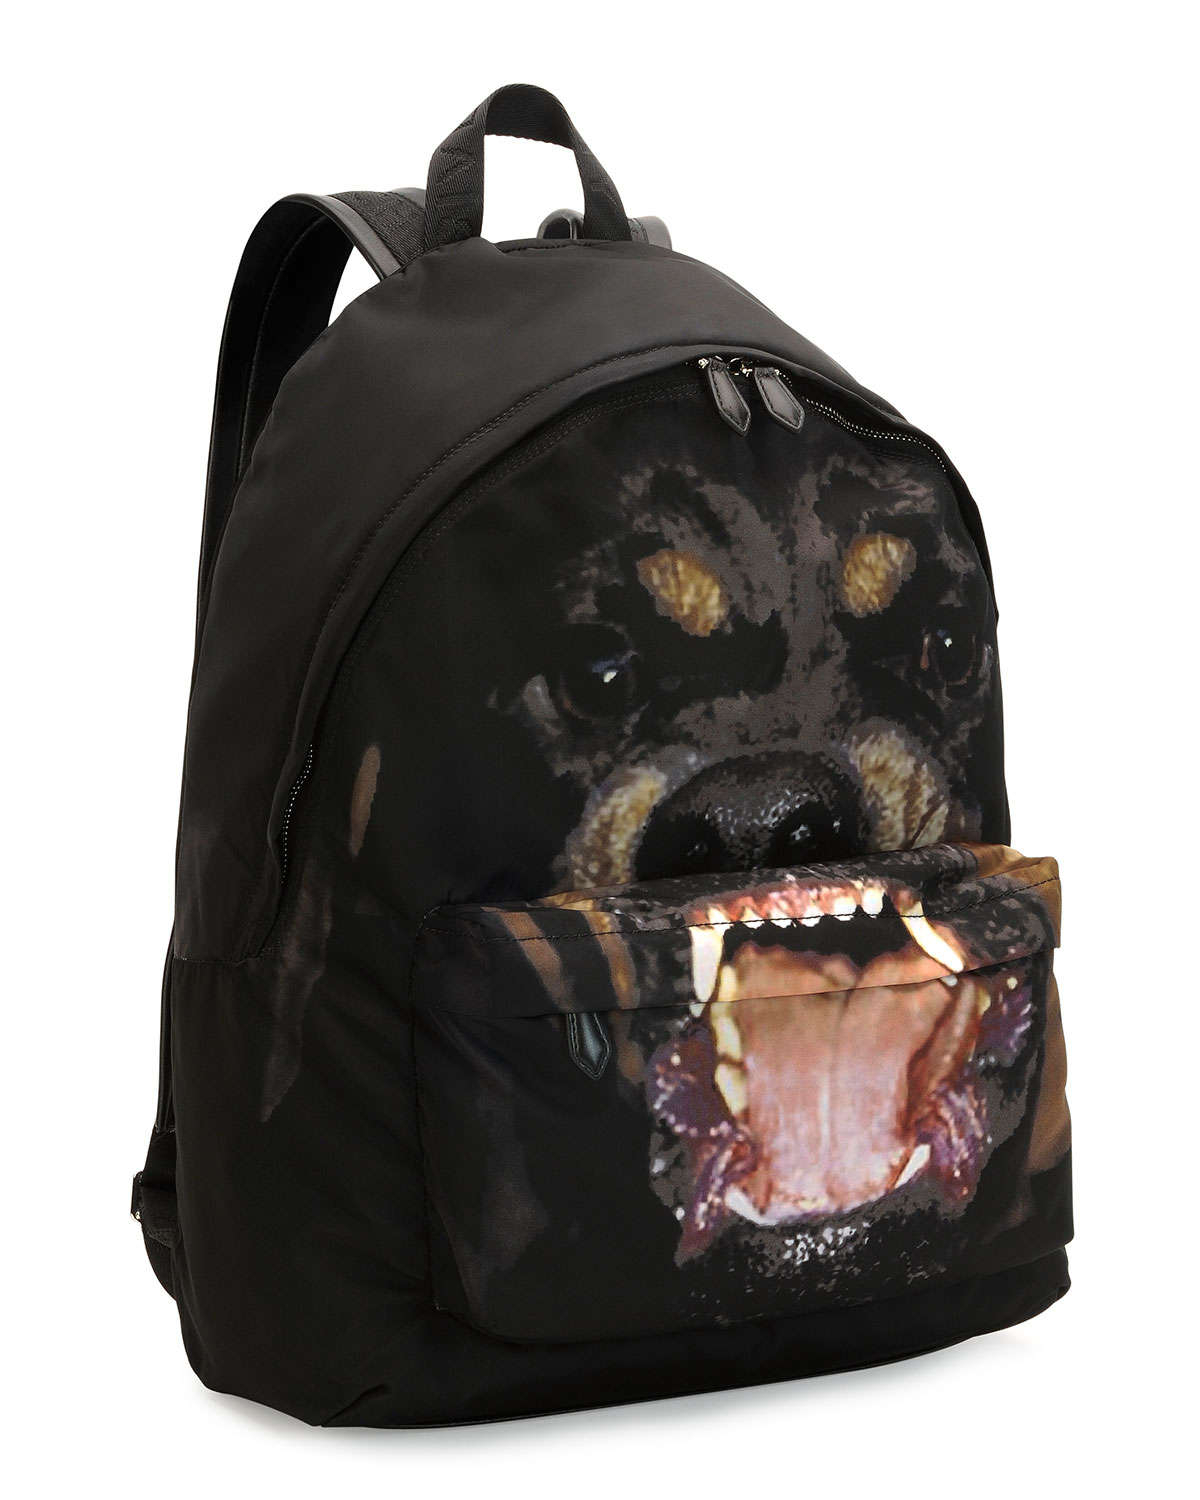 Lyst - Givenchy Rottweiler Nylon Backpack in Black for Men 93292c8a3406c